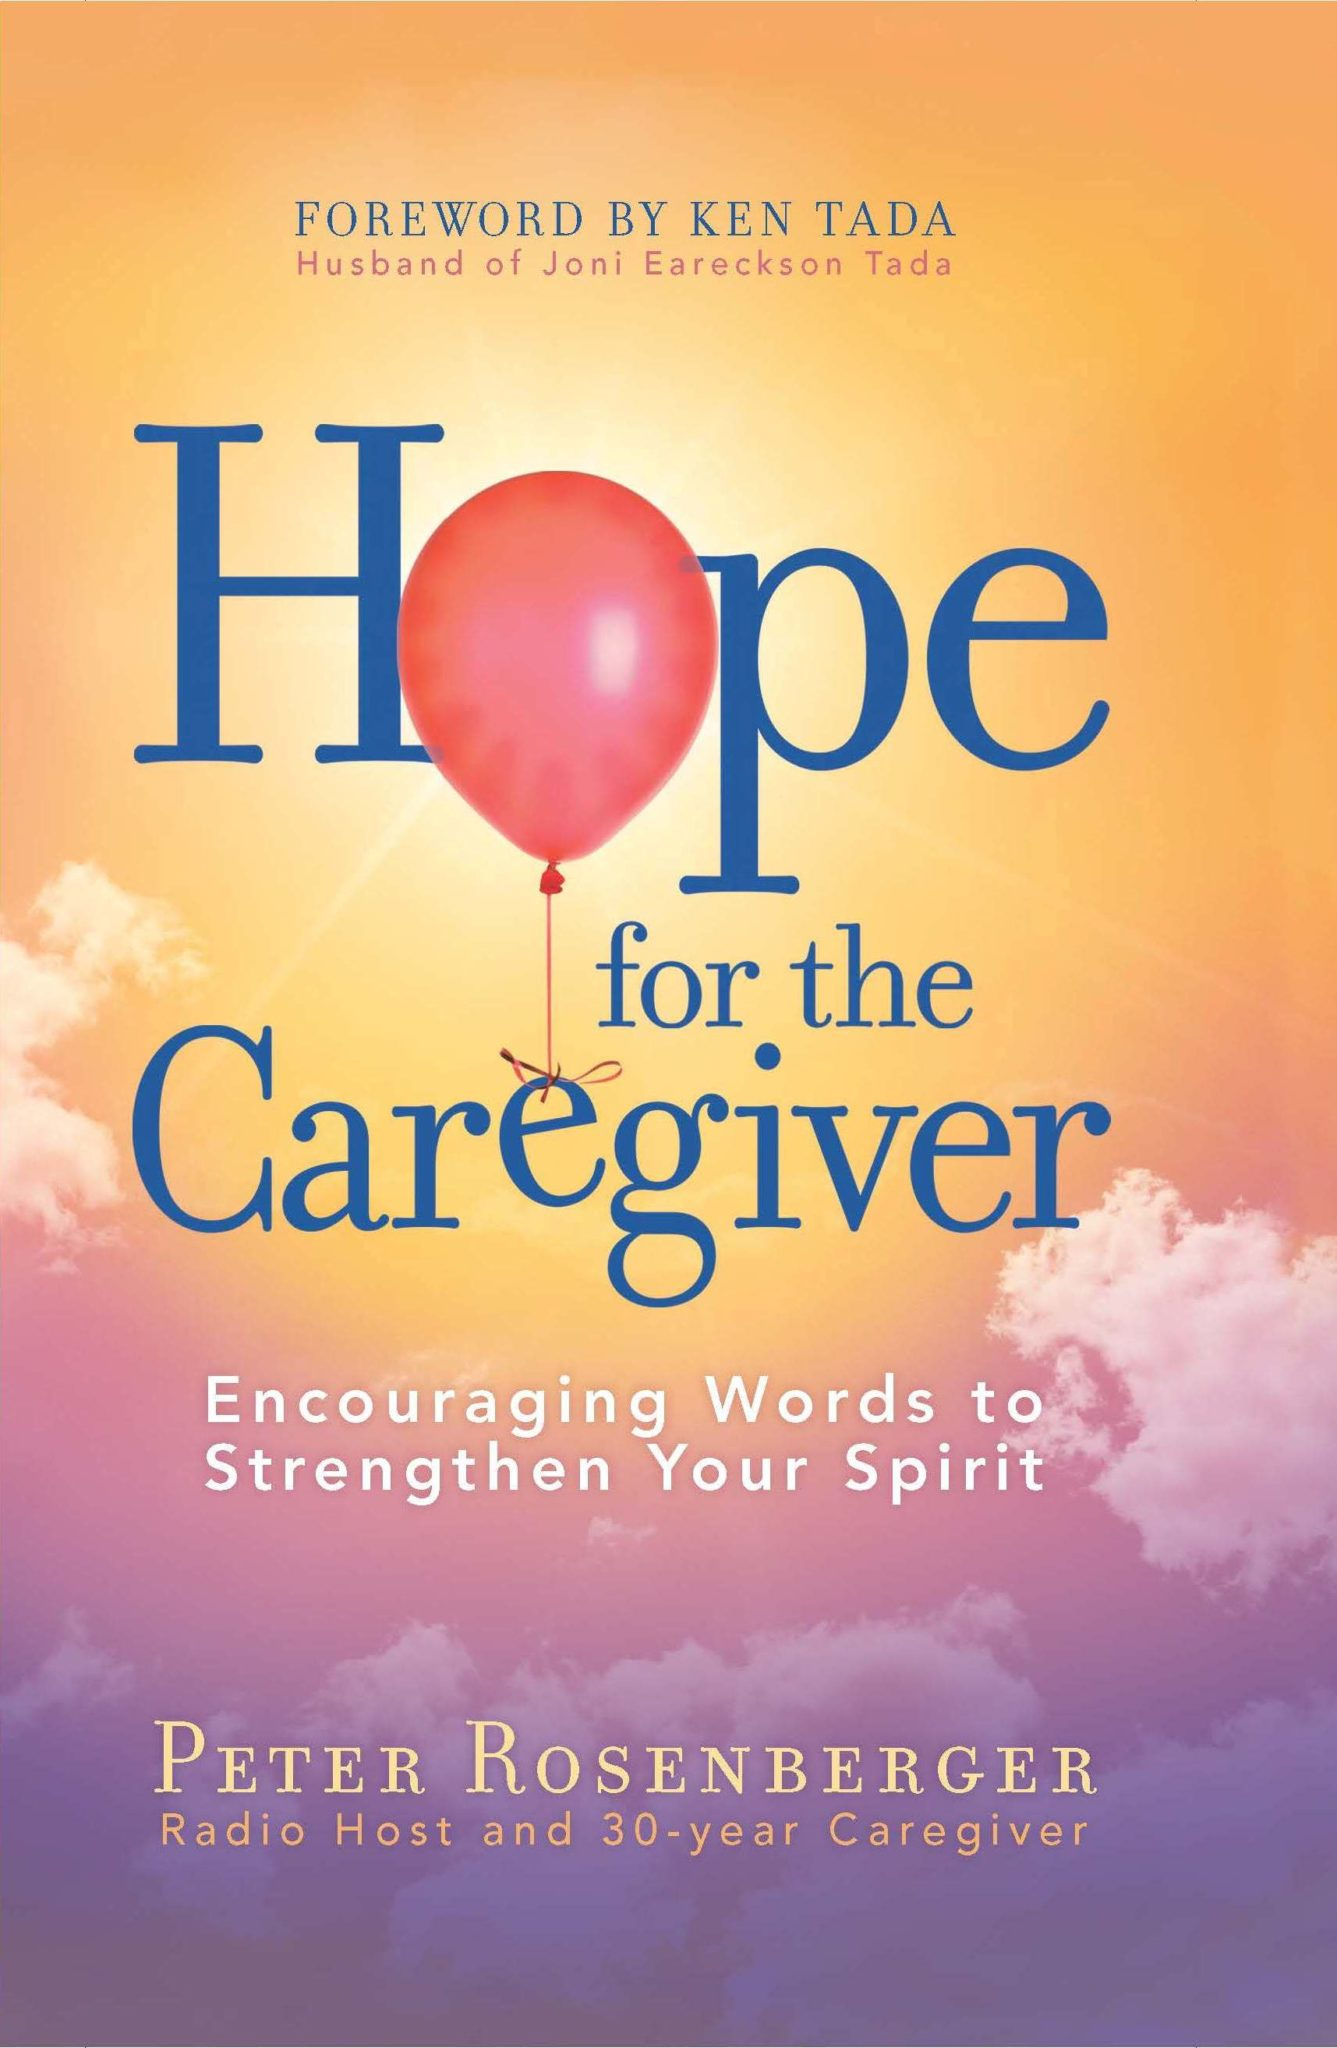 AARP's Study of TN Caregivers